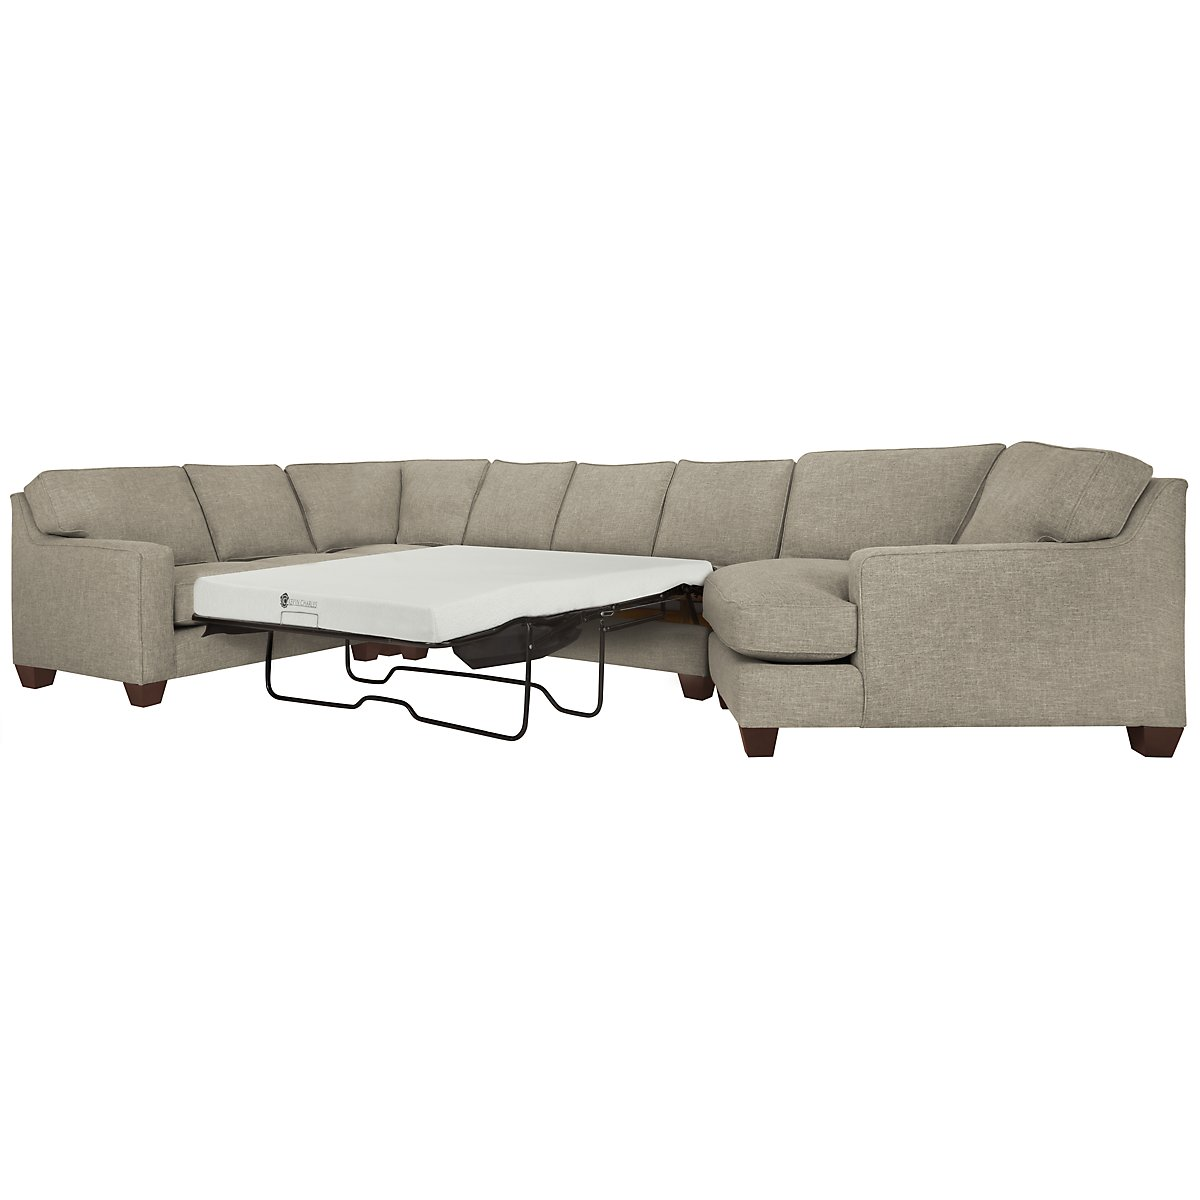 York Pewter Fabric Small Right Cuddler Memory Foam Sleeper Sectional